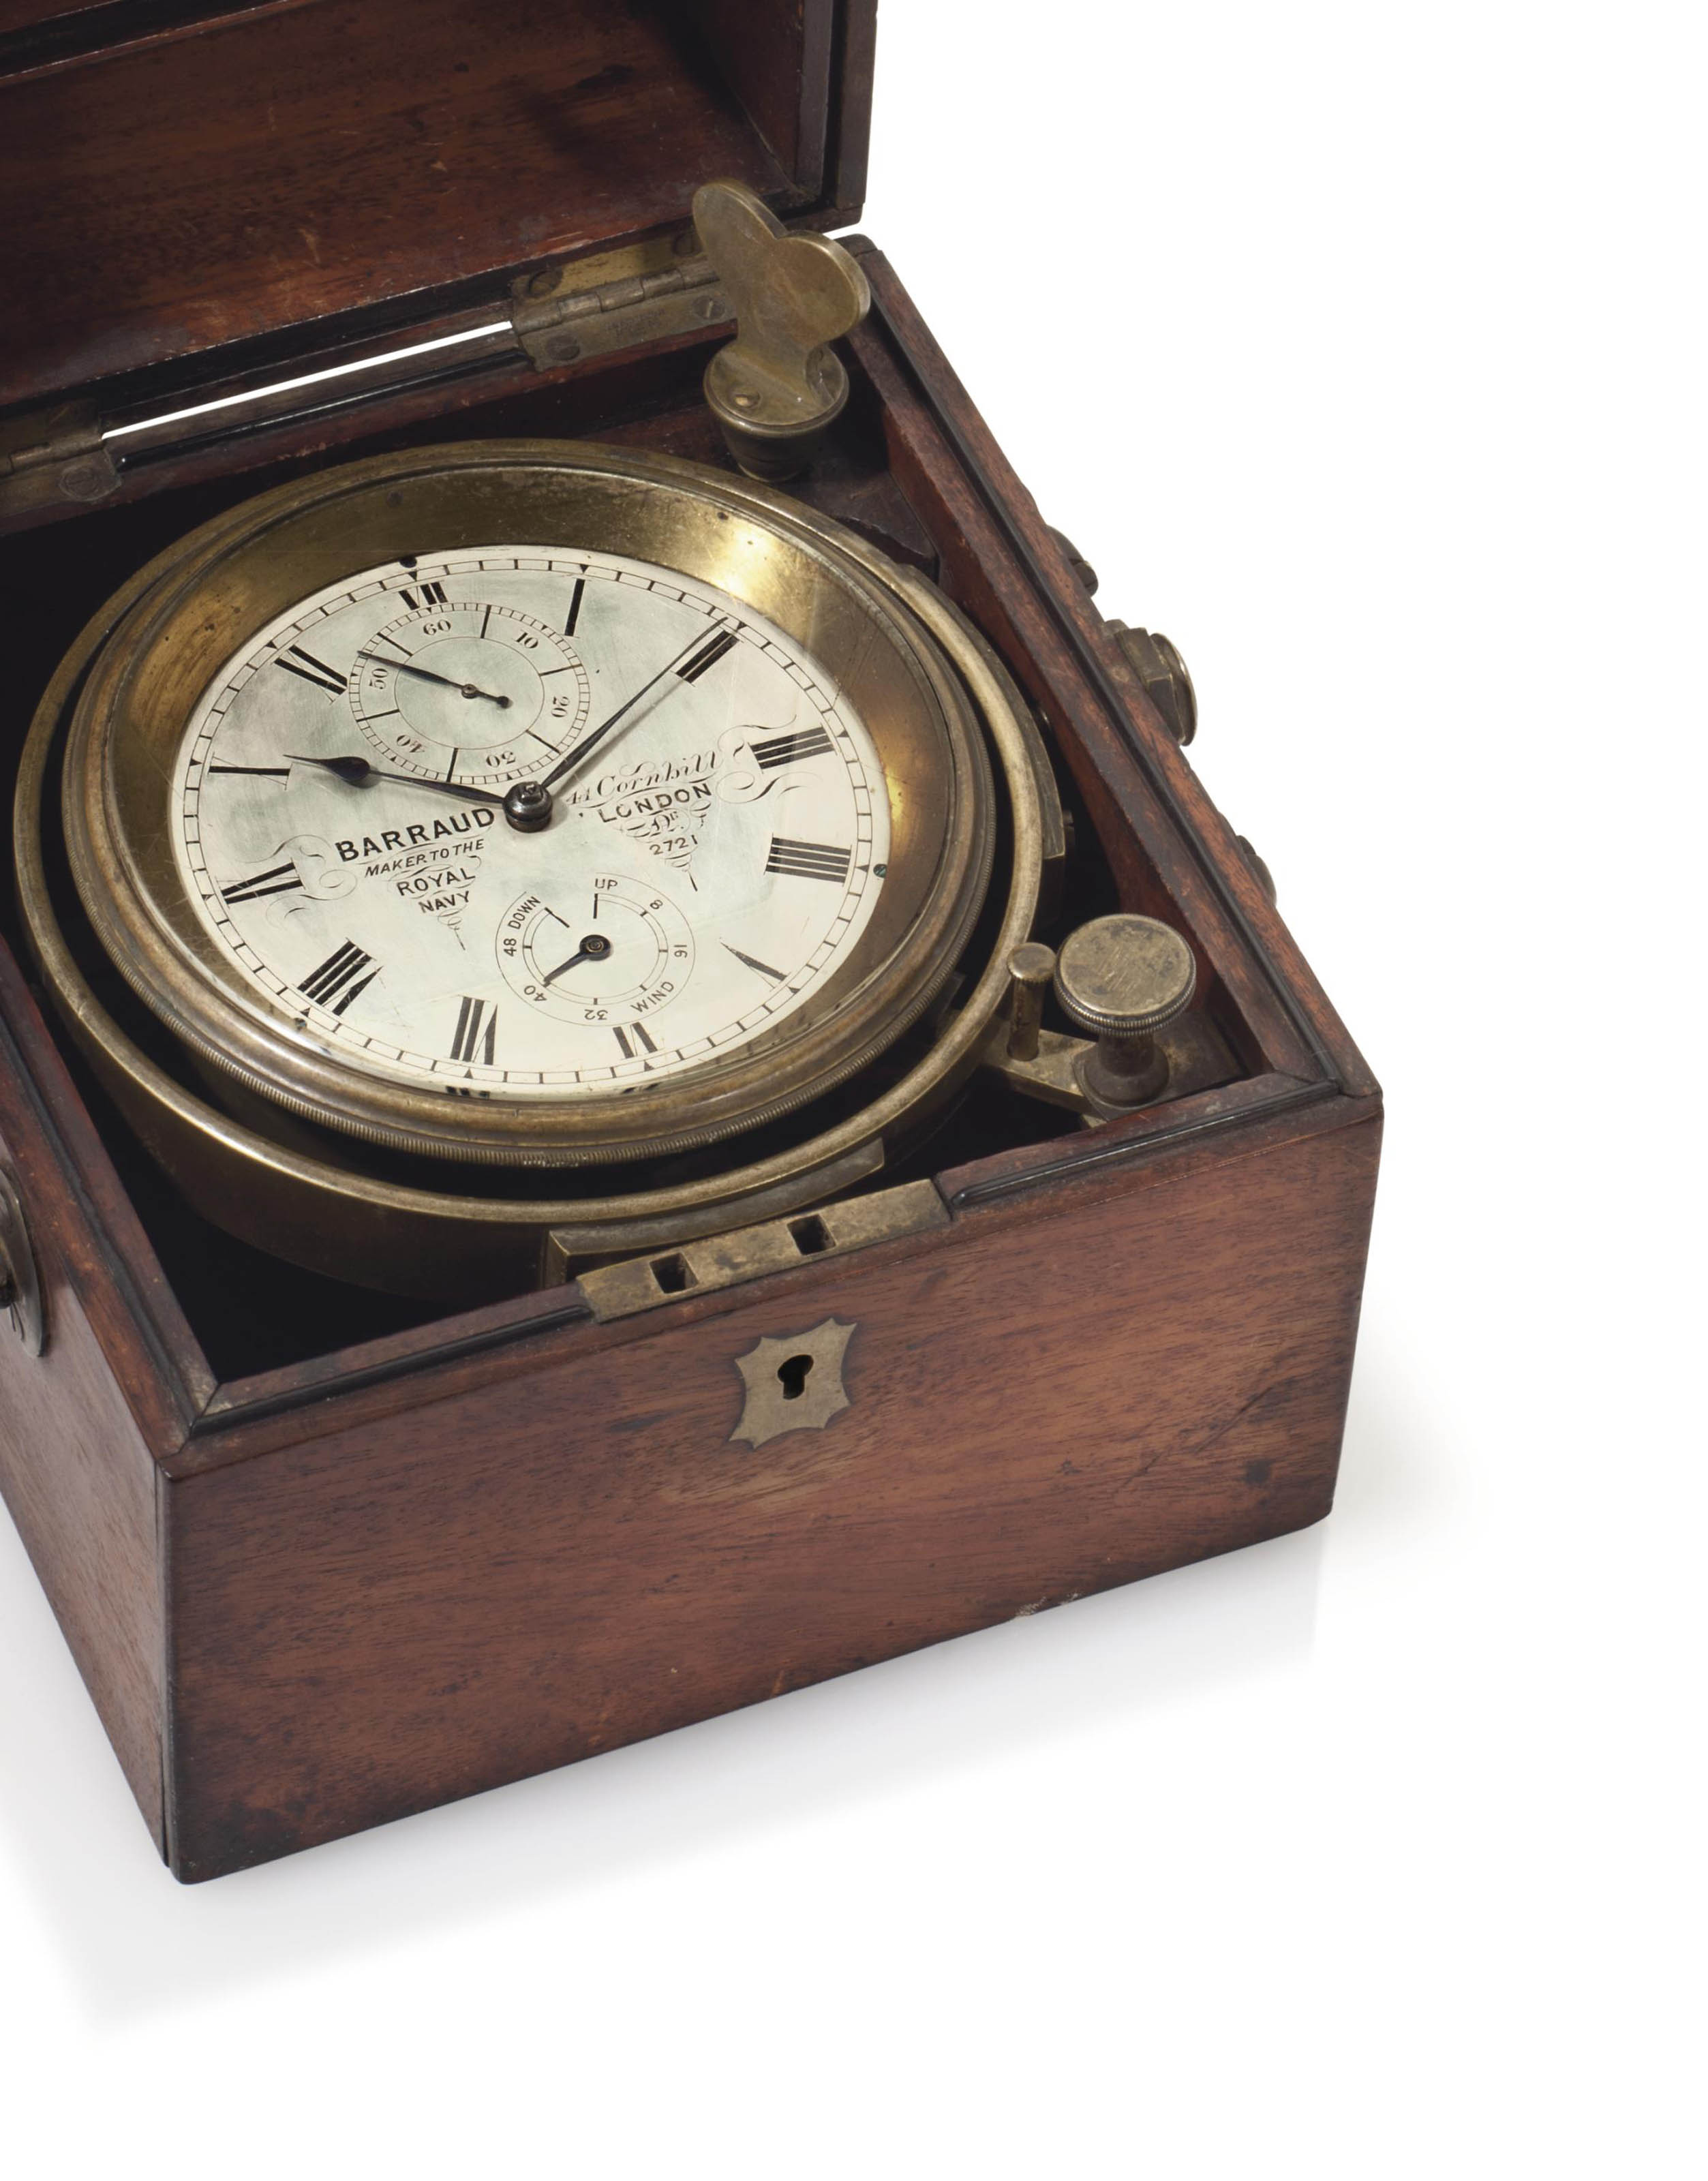 Barraud. A Mahogany Two-Day Marine Chronometer with Helical Hairspring and Power Reserve Indication